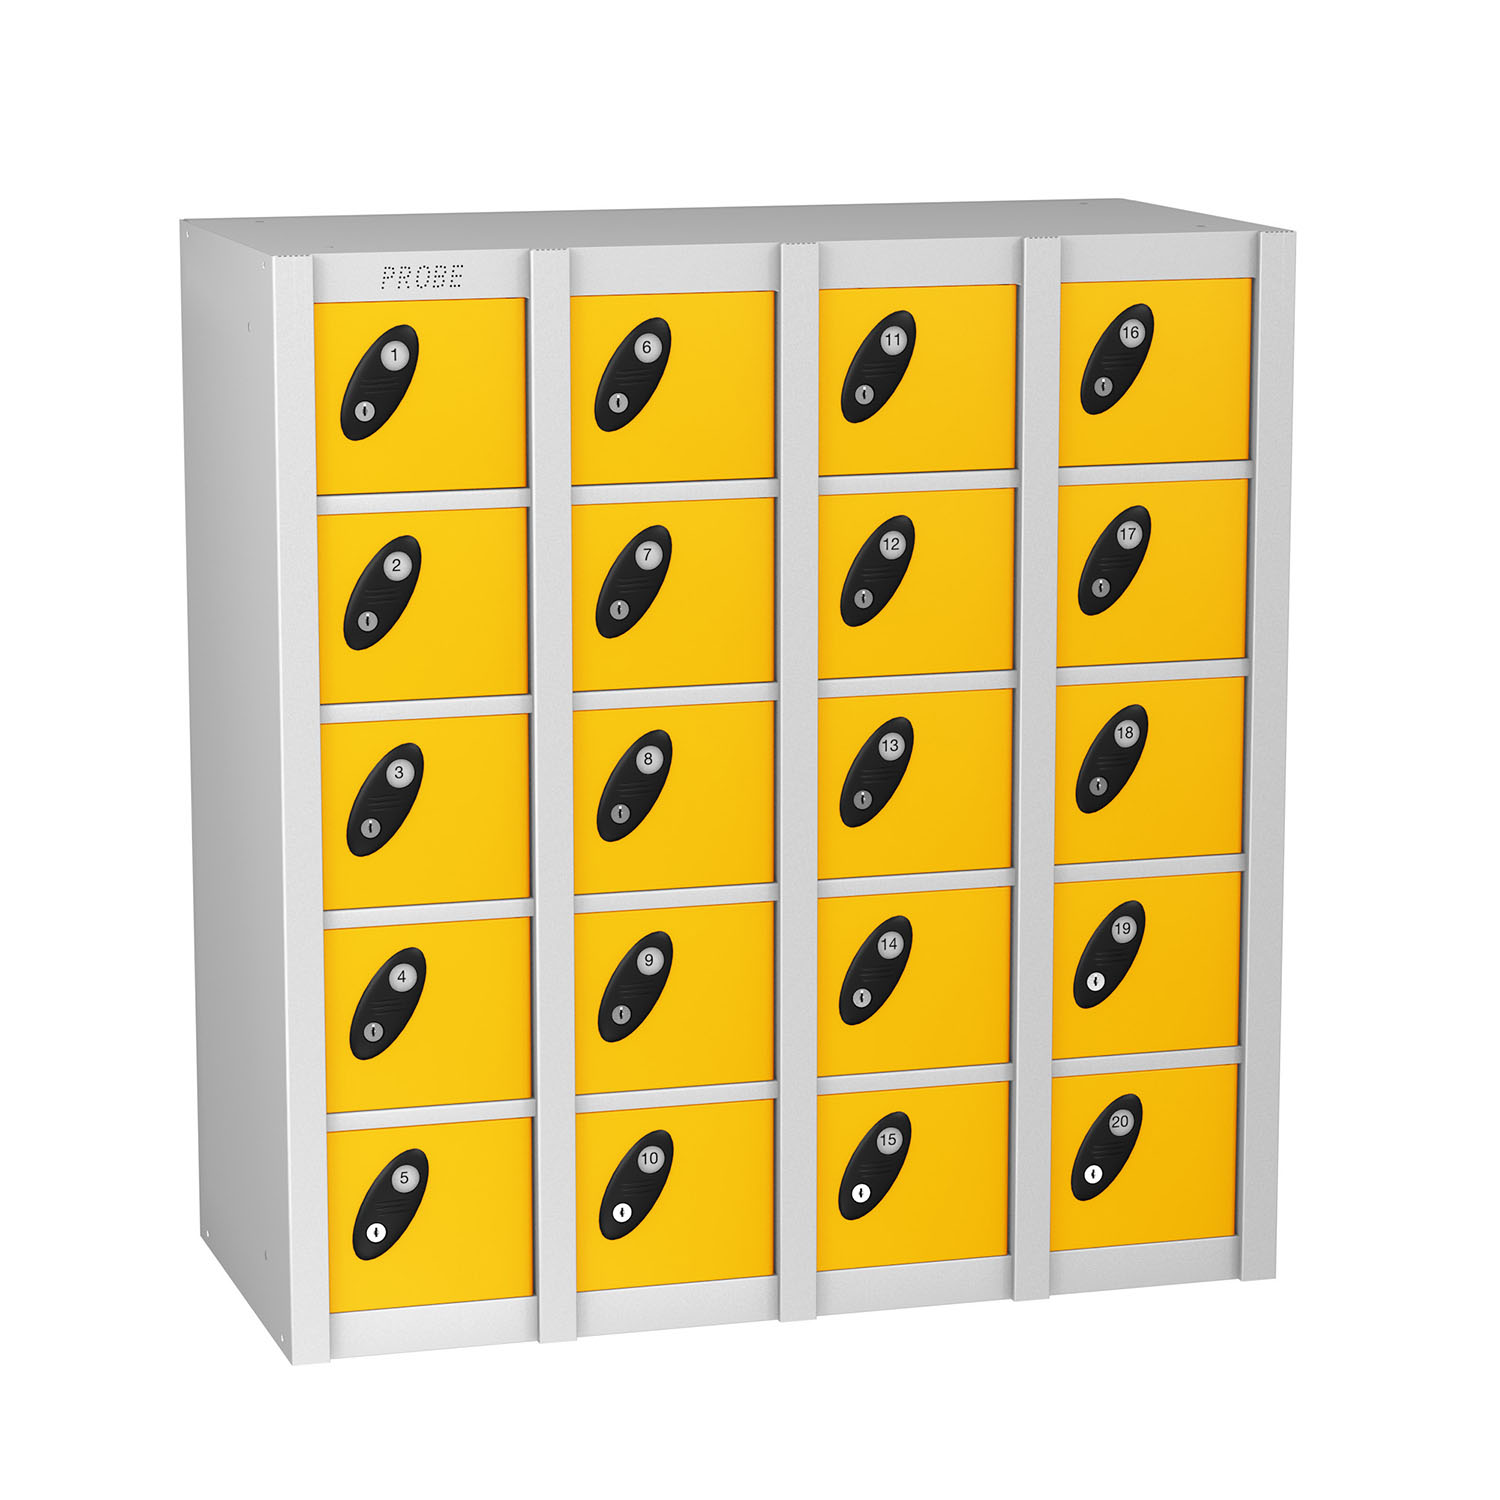 Probe 20 doors minibox lockers in yellow colour